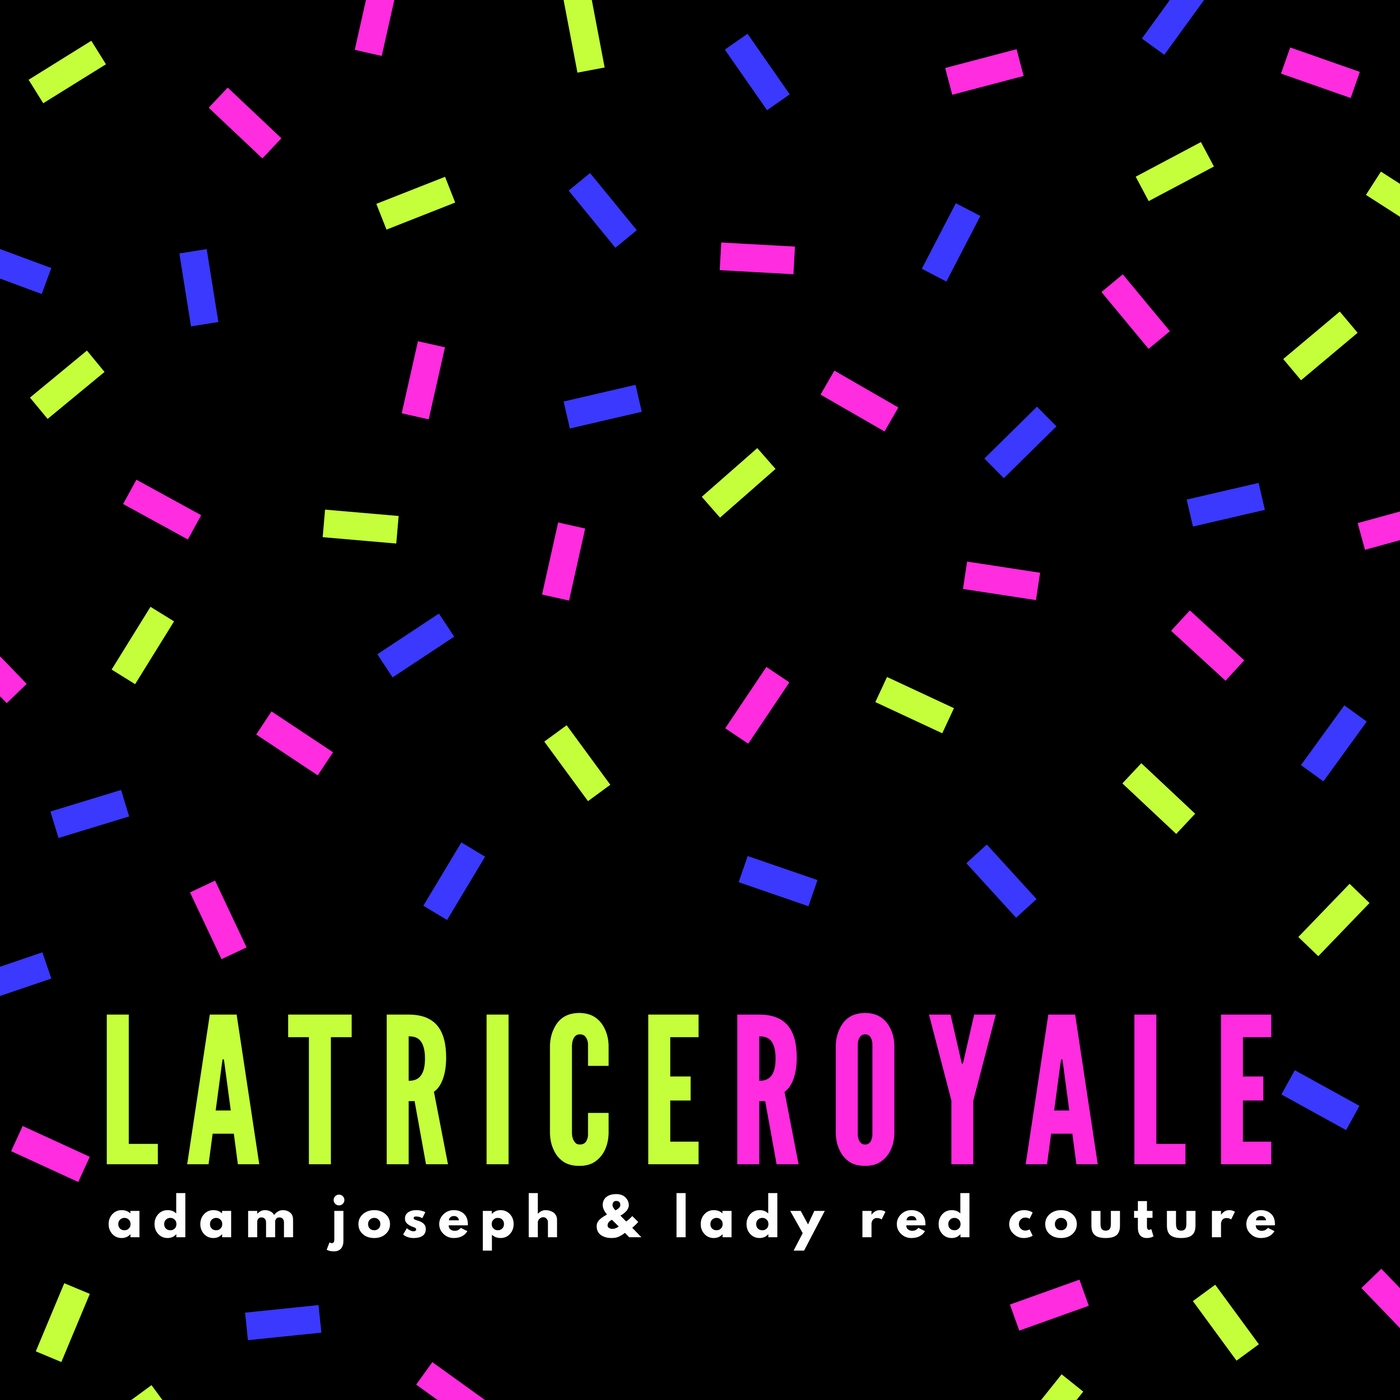 Adam Joseph & Lady Red Couture - Latrice Royale